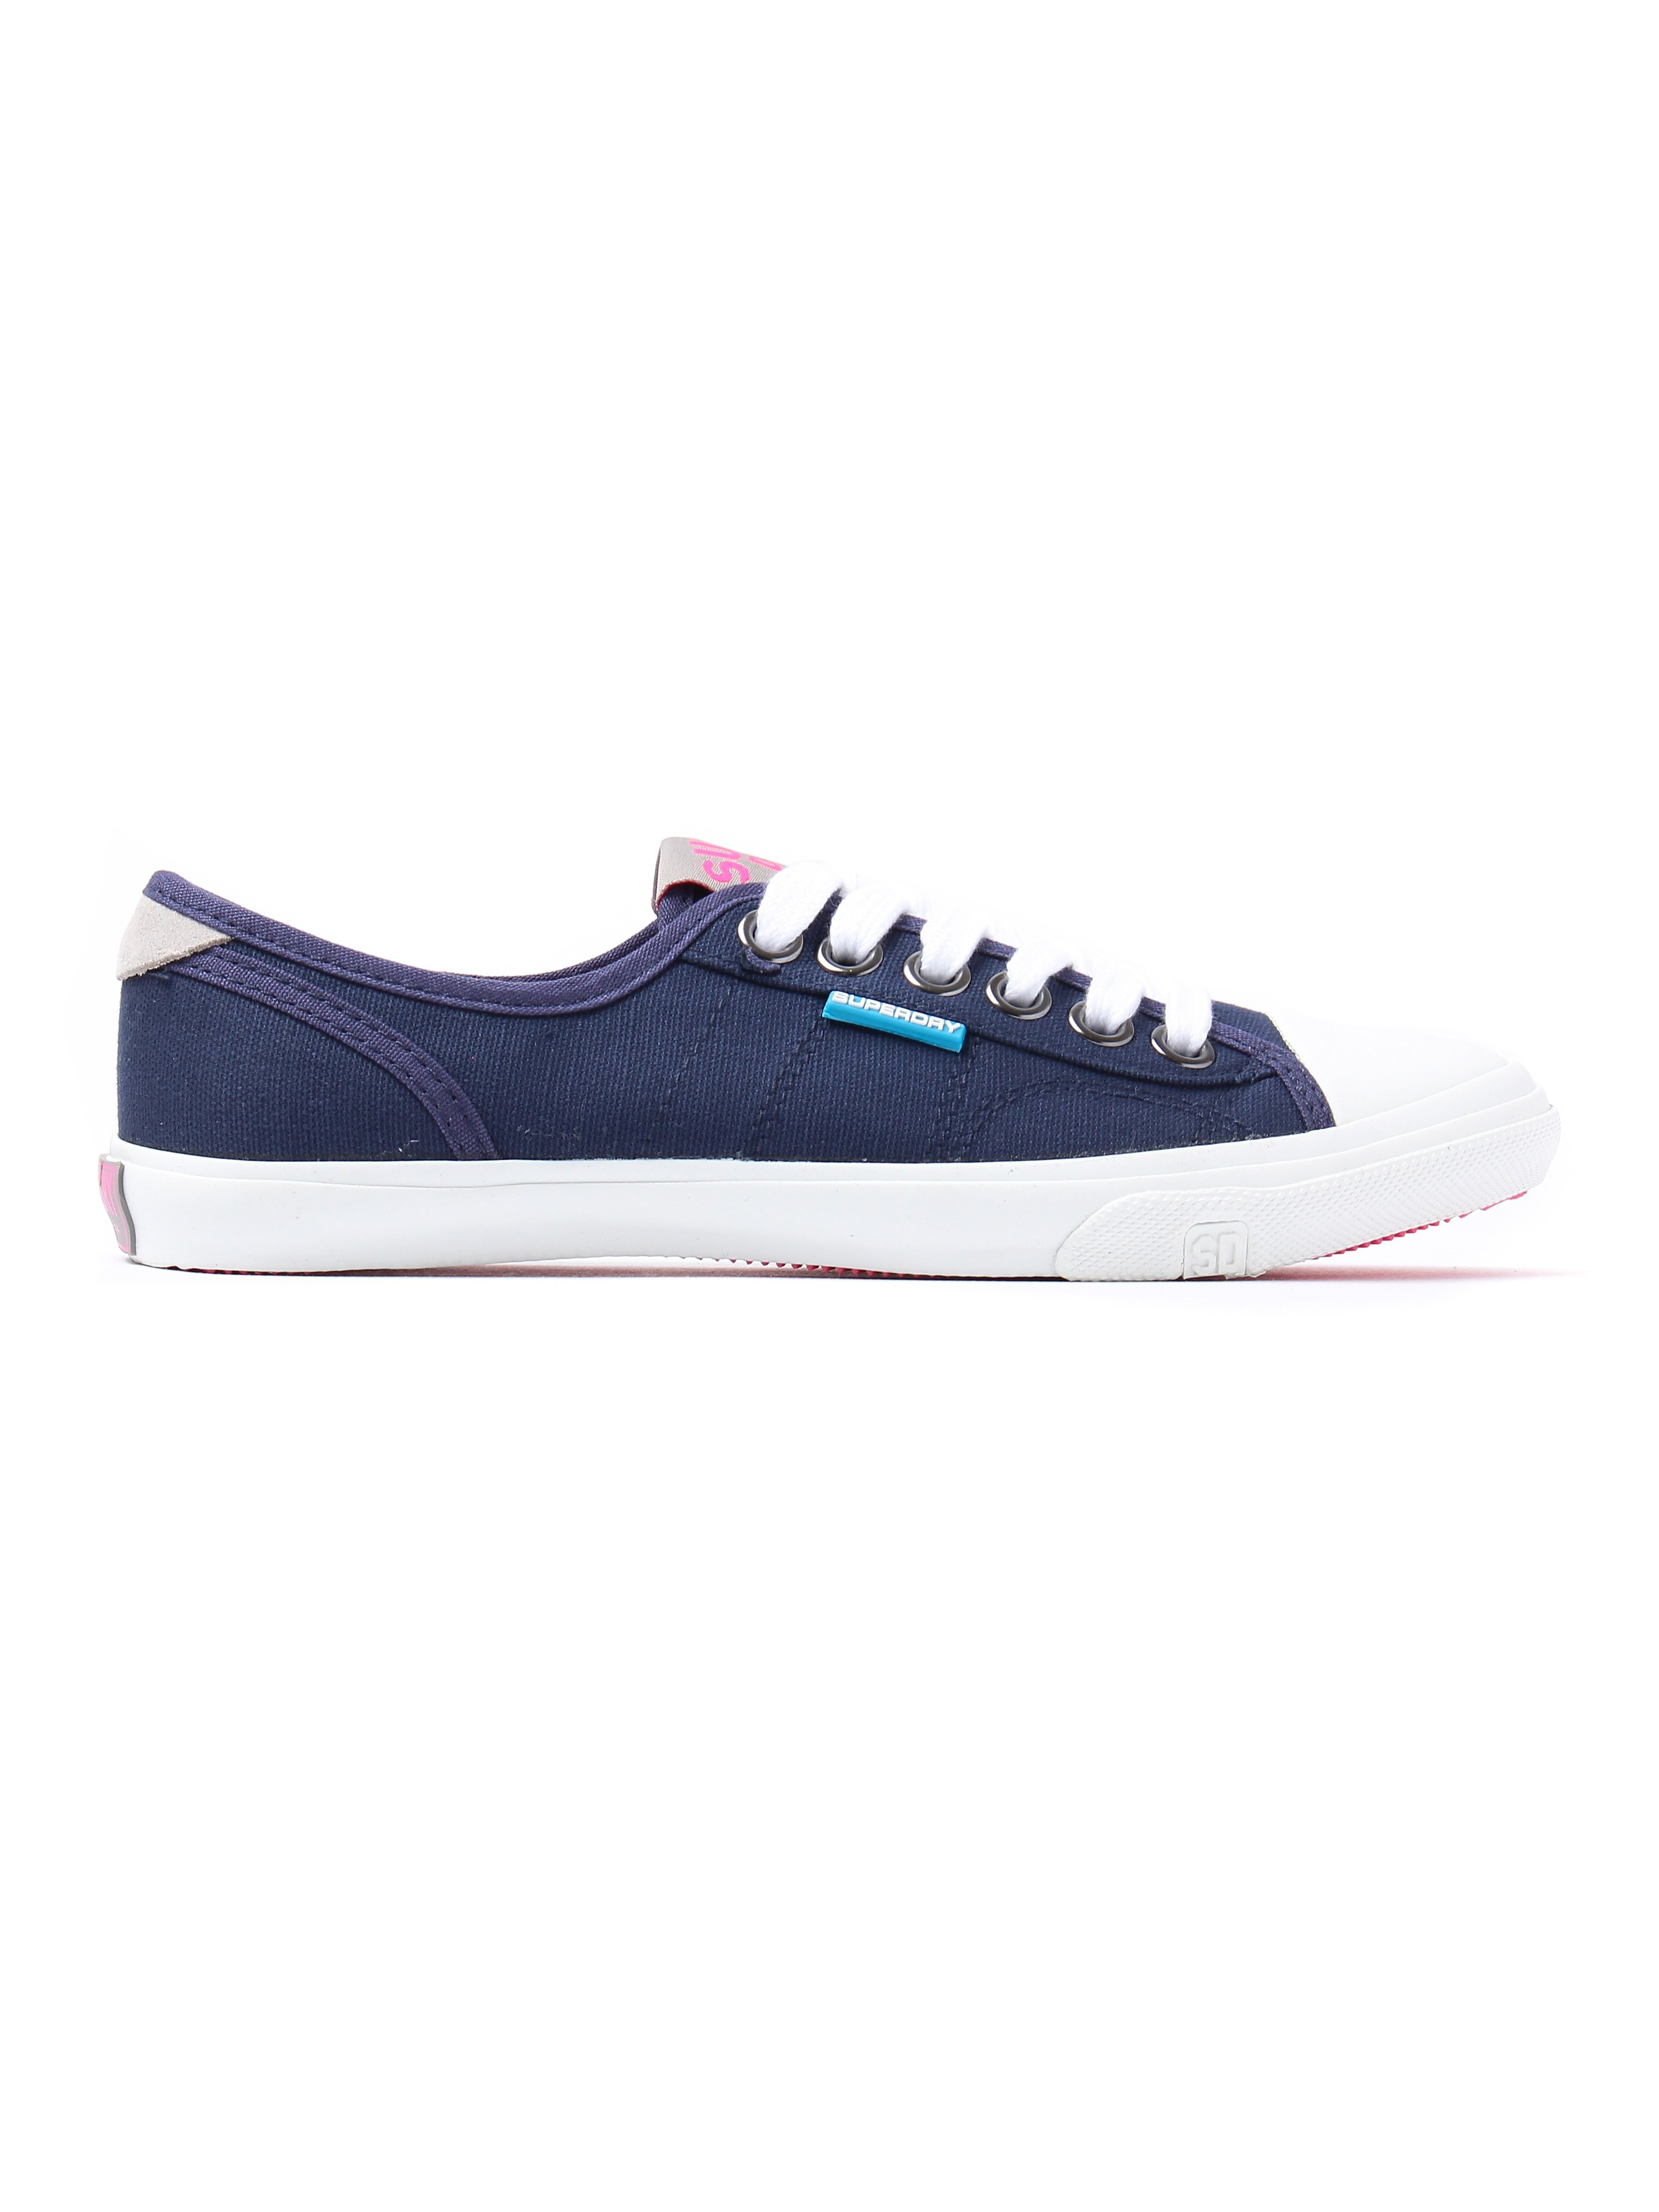 Superdry Women's Low Pro Lace Up Canvas Trainers - Deep Indigo